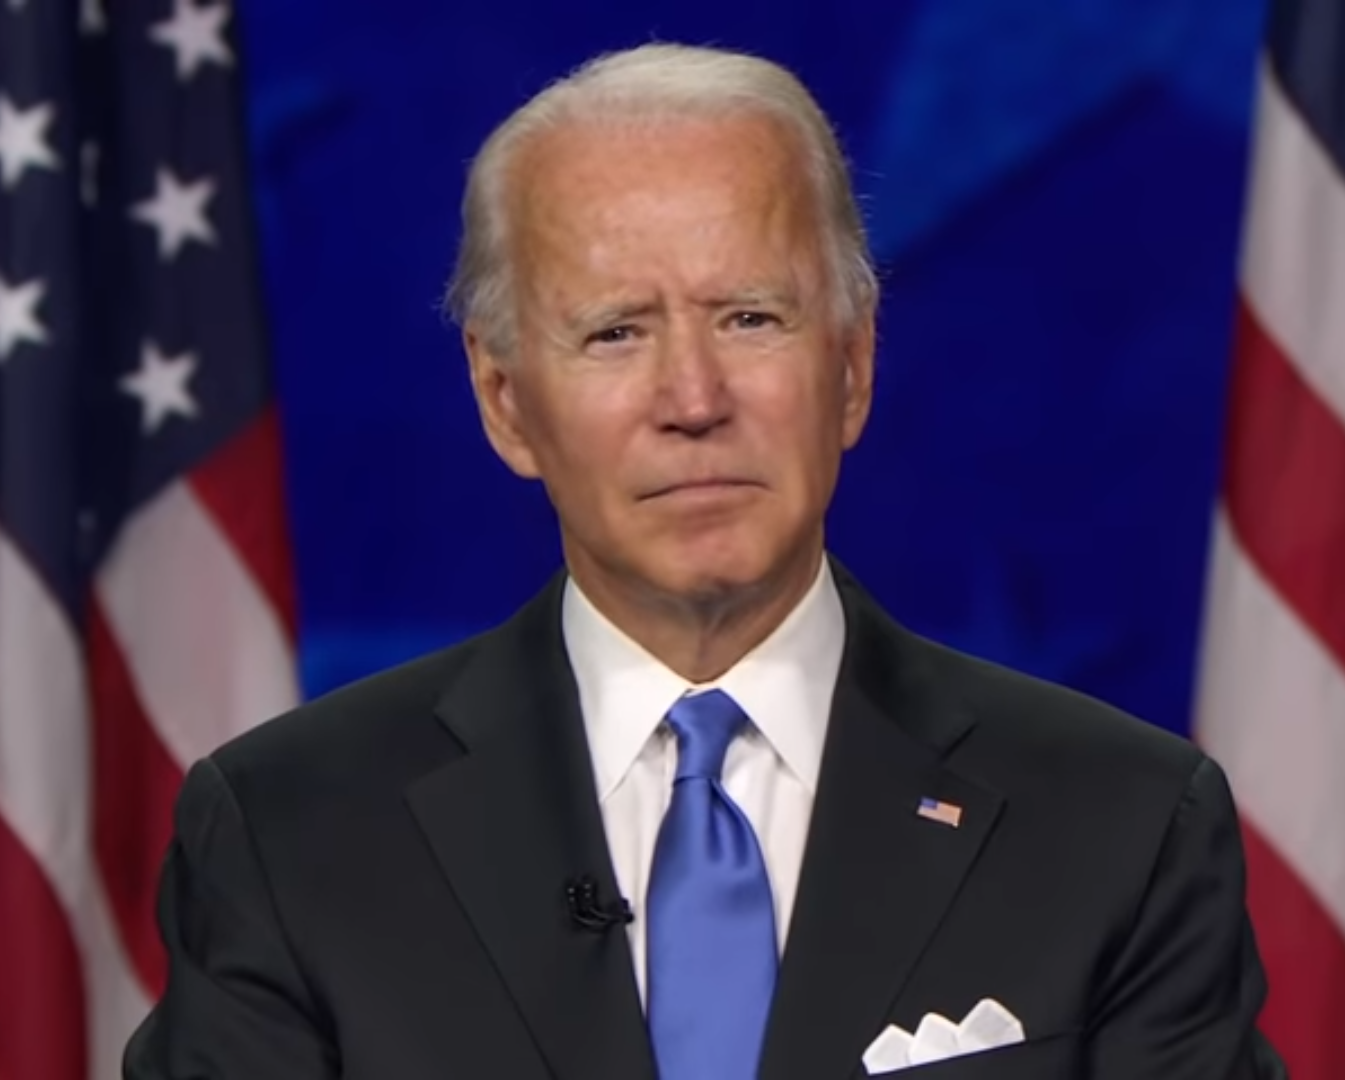 Biden's empathy is the focus point at the DNC